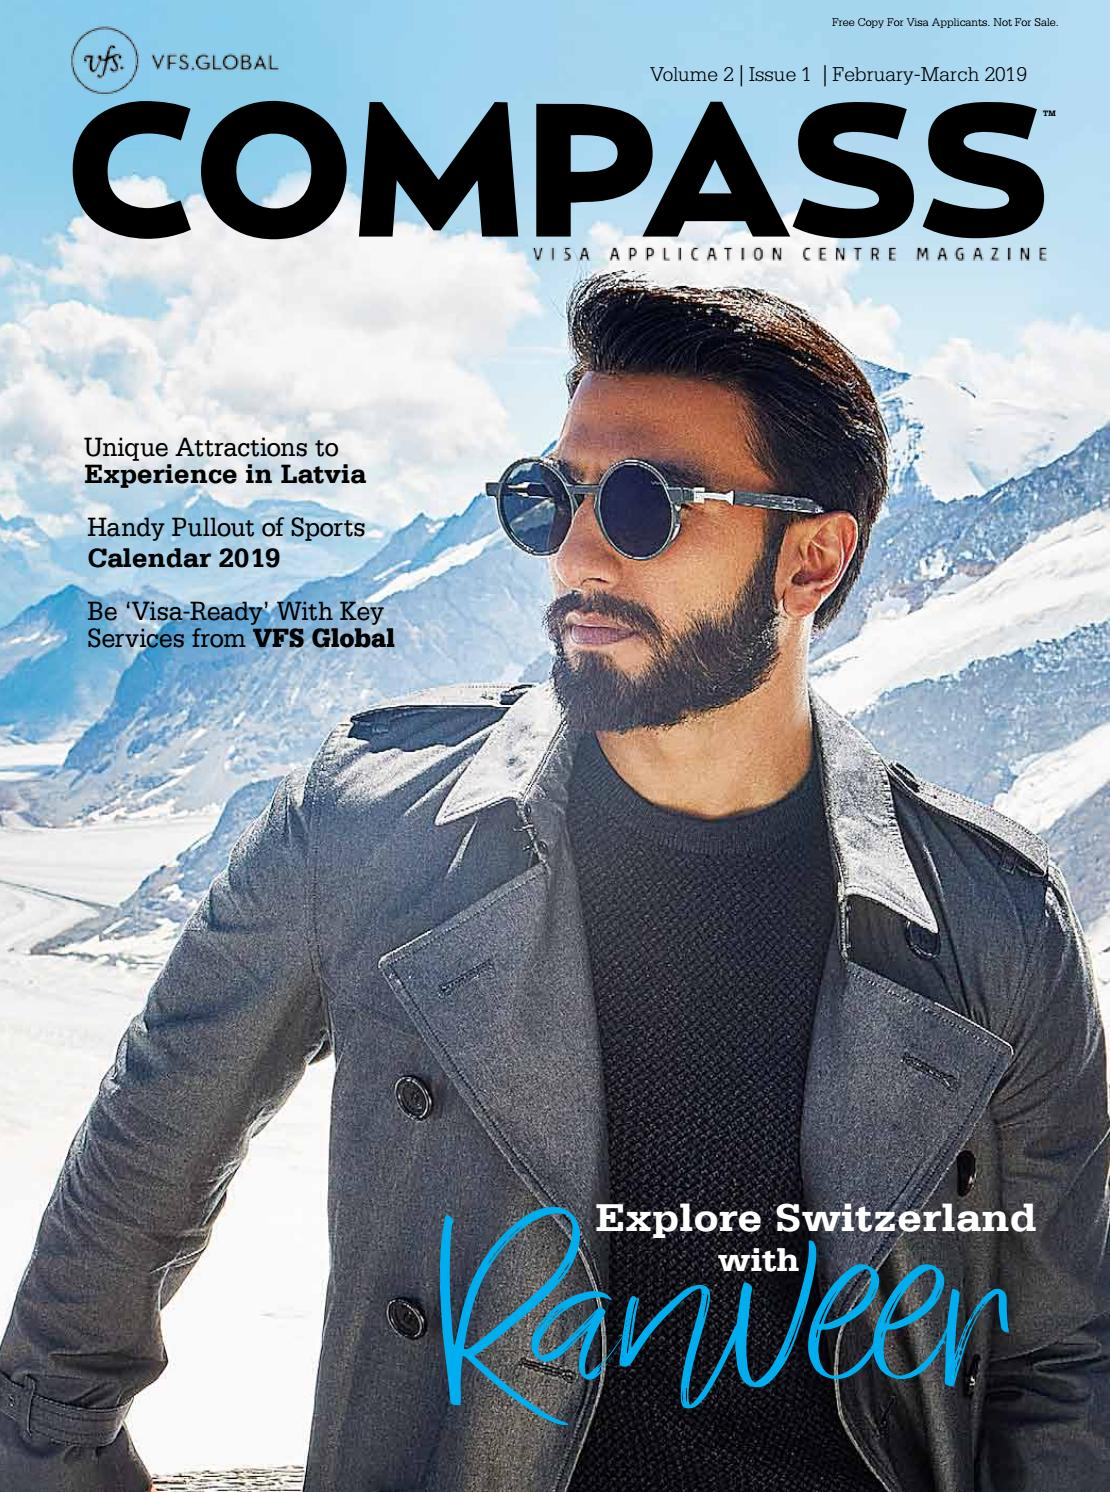 VFS Global COMPASS (UAE Edition) February - March 2019 by